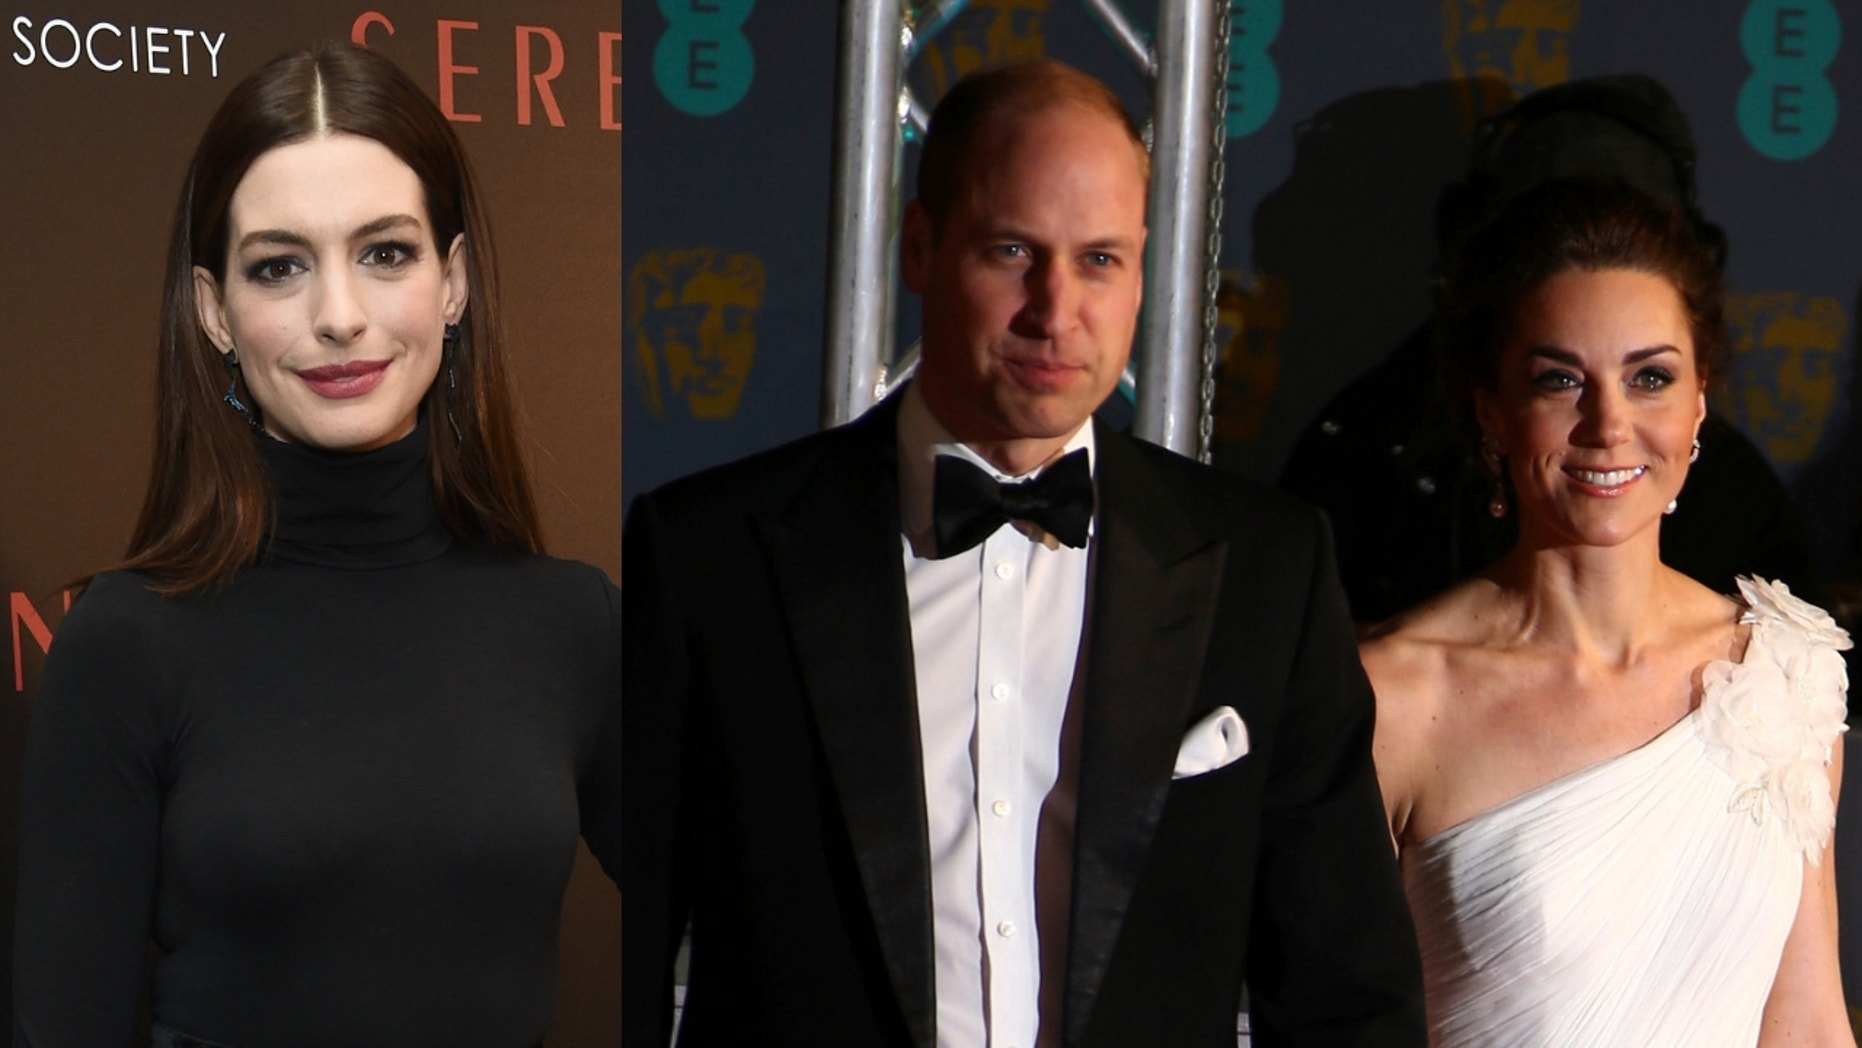 Anne Hathaway said she learned one parenting tip from Prince William and Kate Middleton.